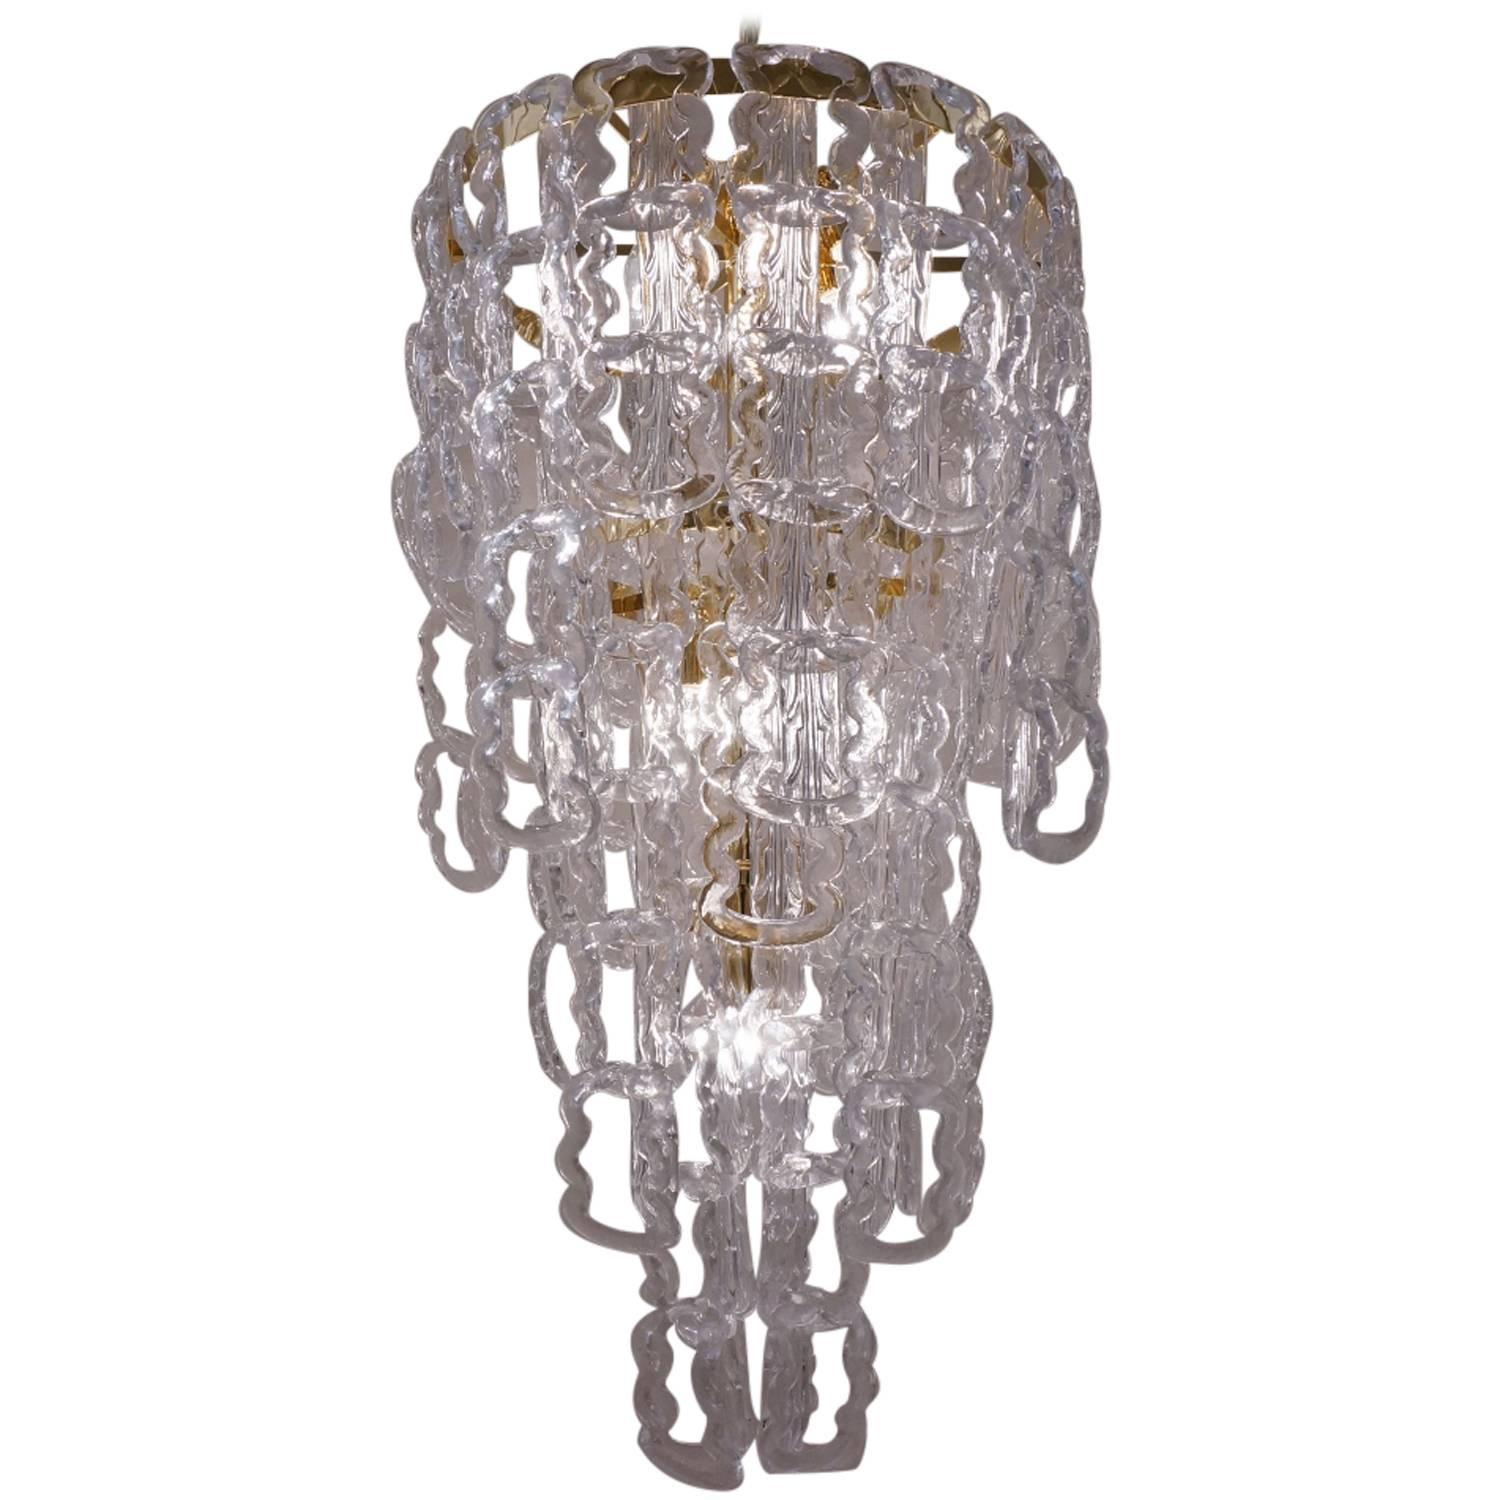 Murano Glass Chandelier For Sale at 1stdibs